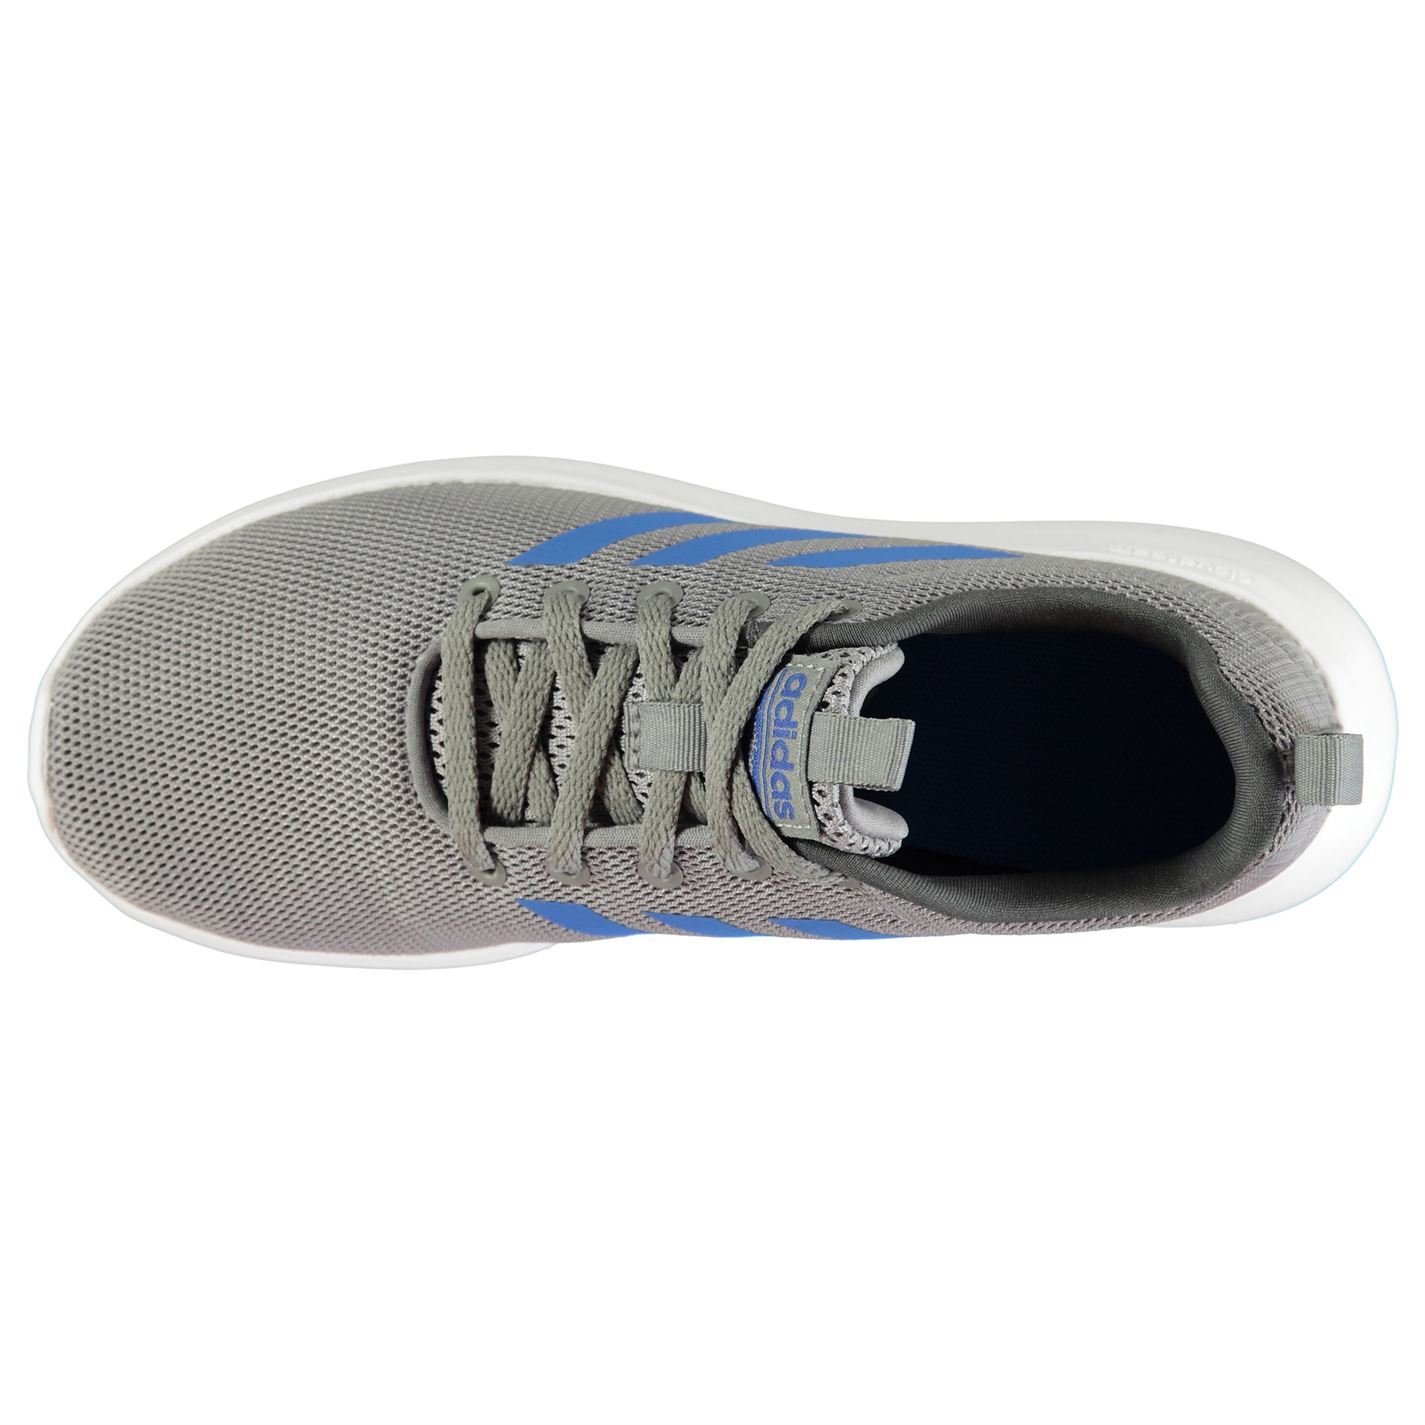 adidas Lite Racer CLN Trainers Junior Boys Shoes Footwear